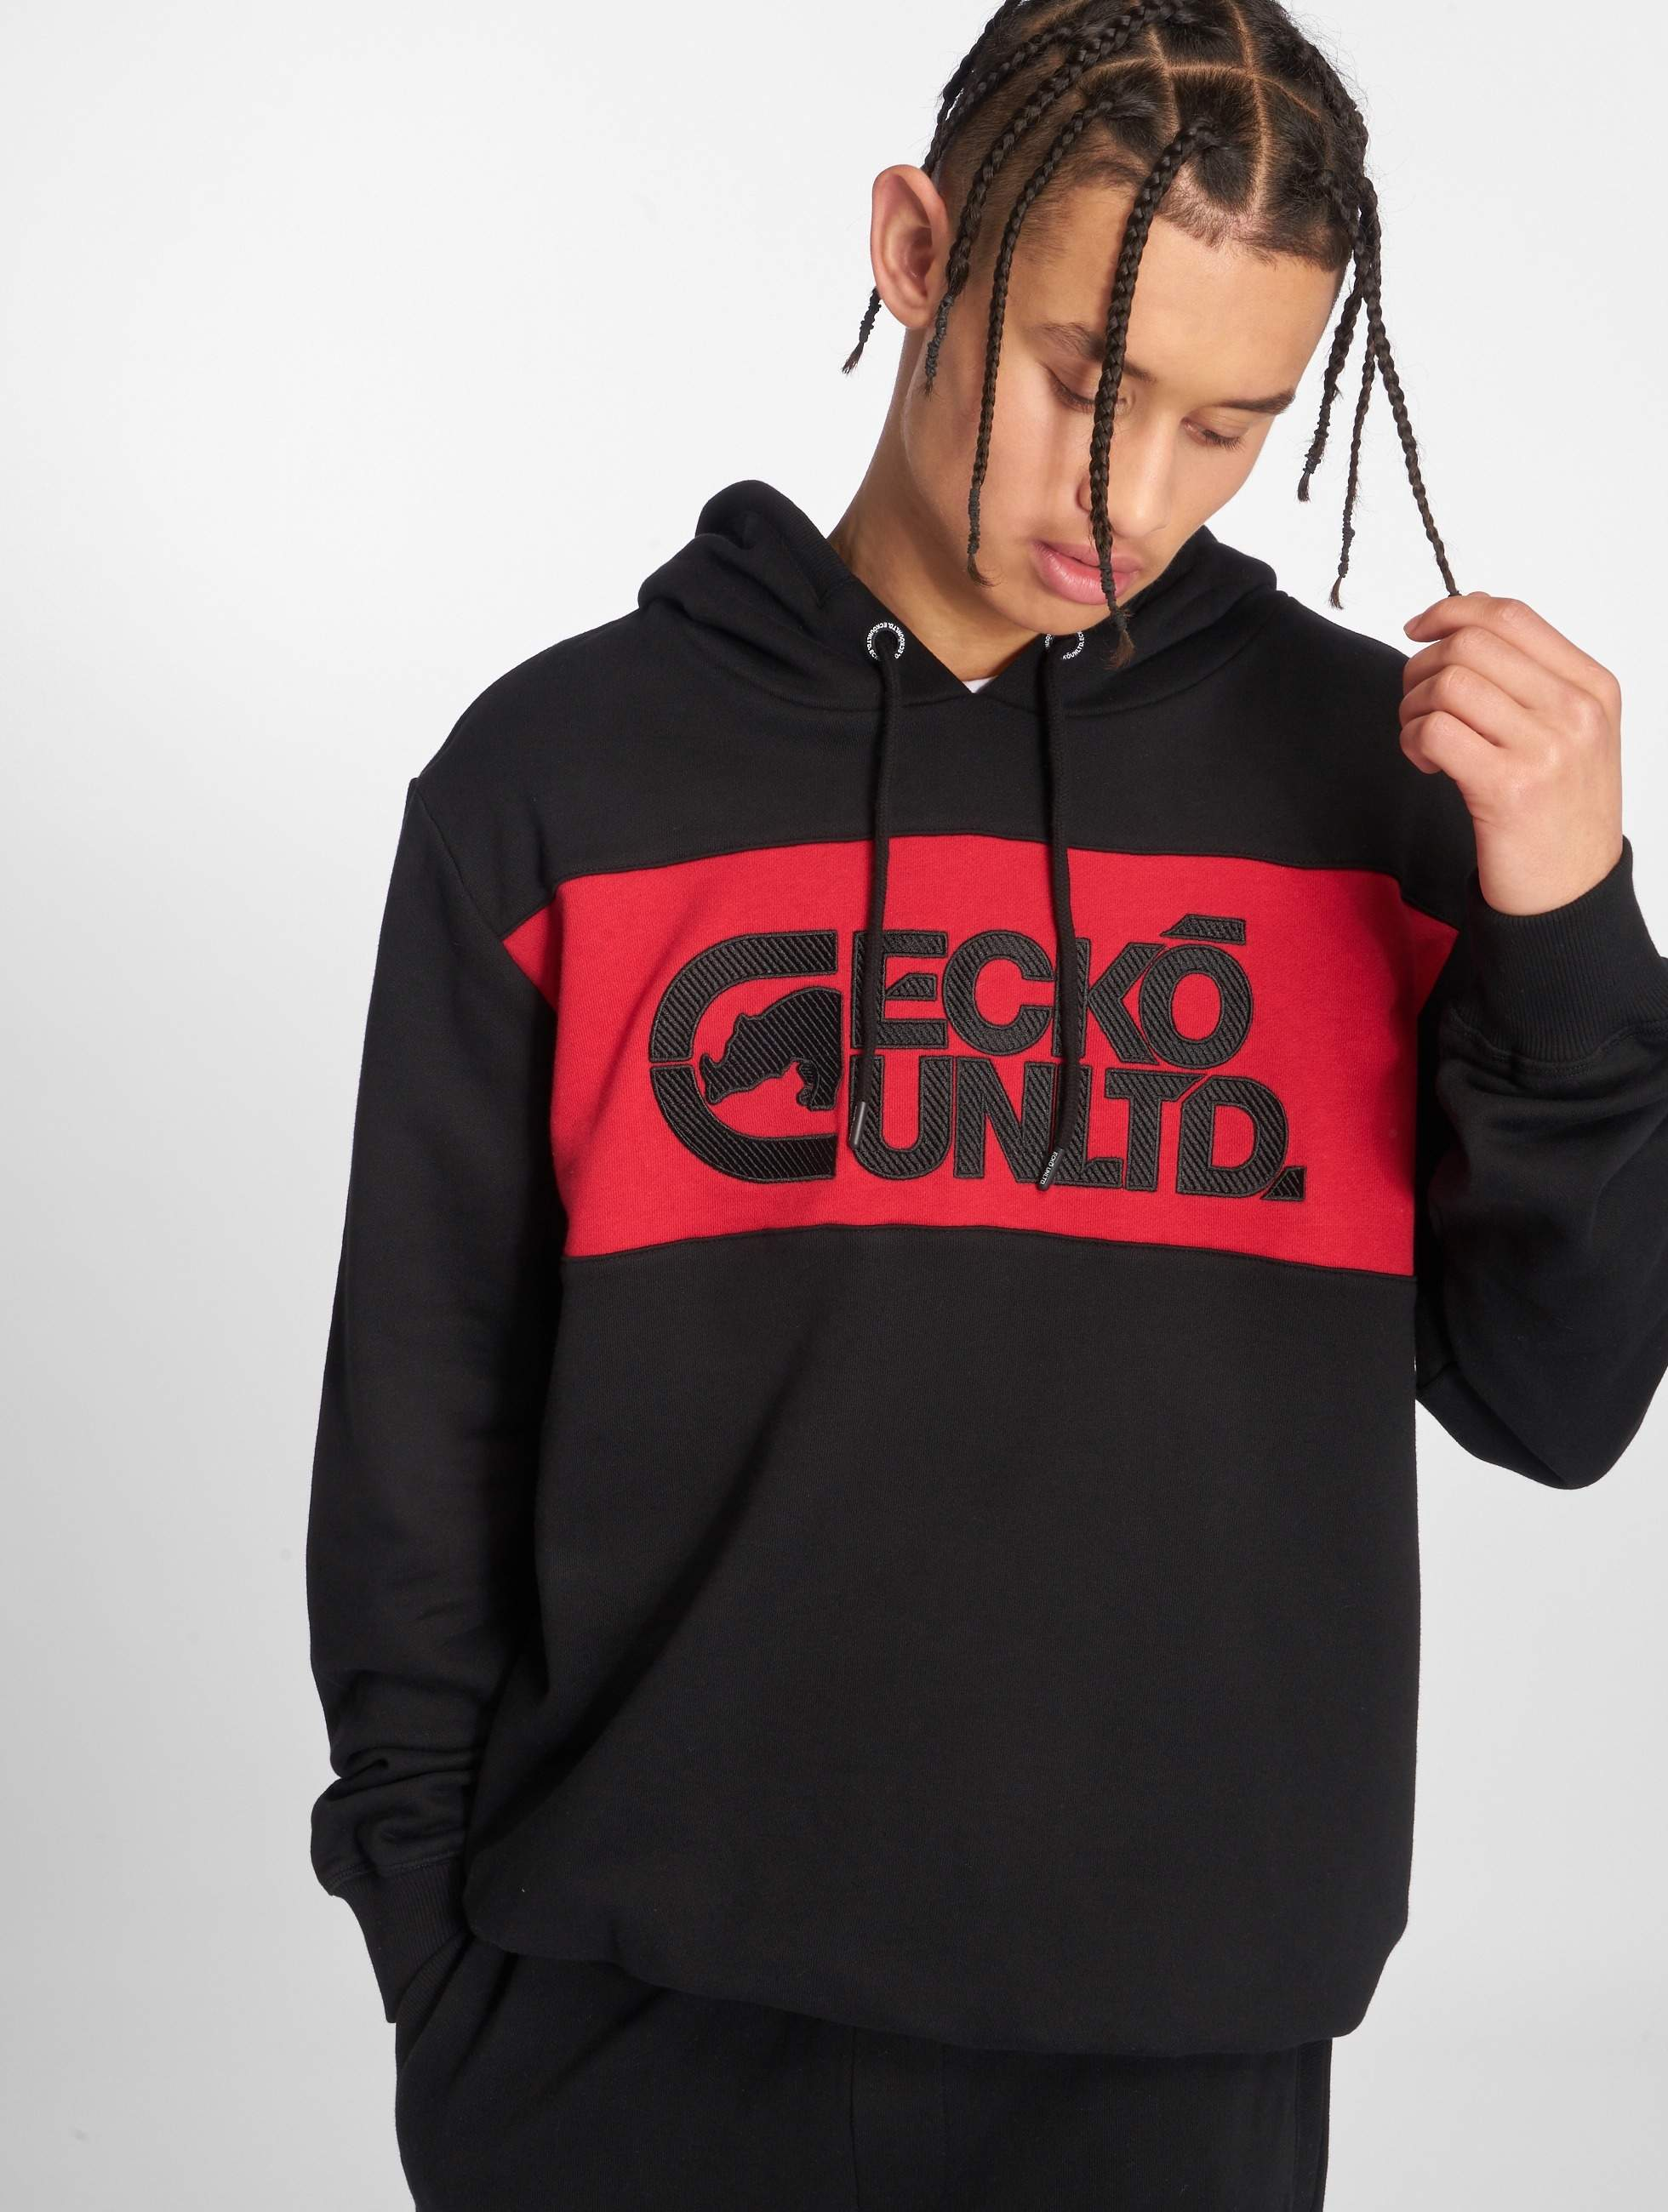 Ecko Unltd. / Hoodie Mr.Hamilton in red M